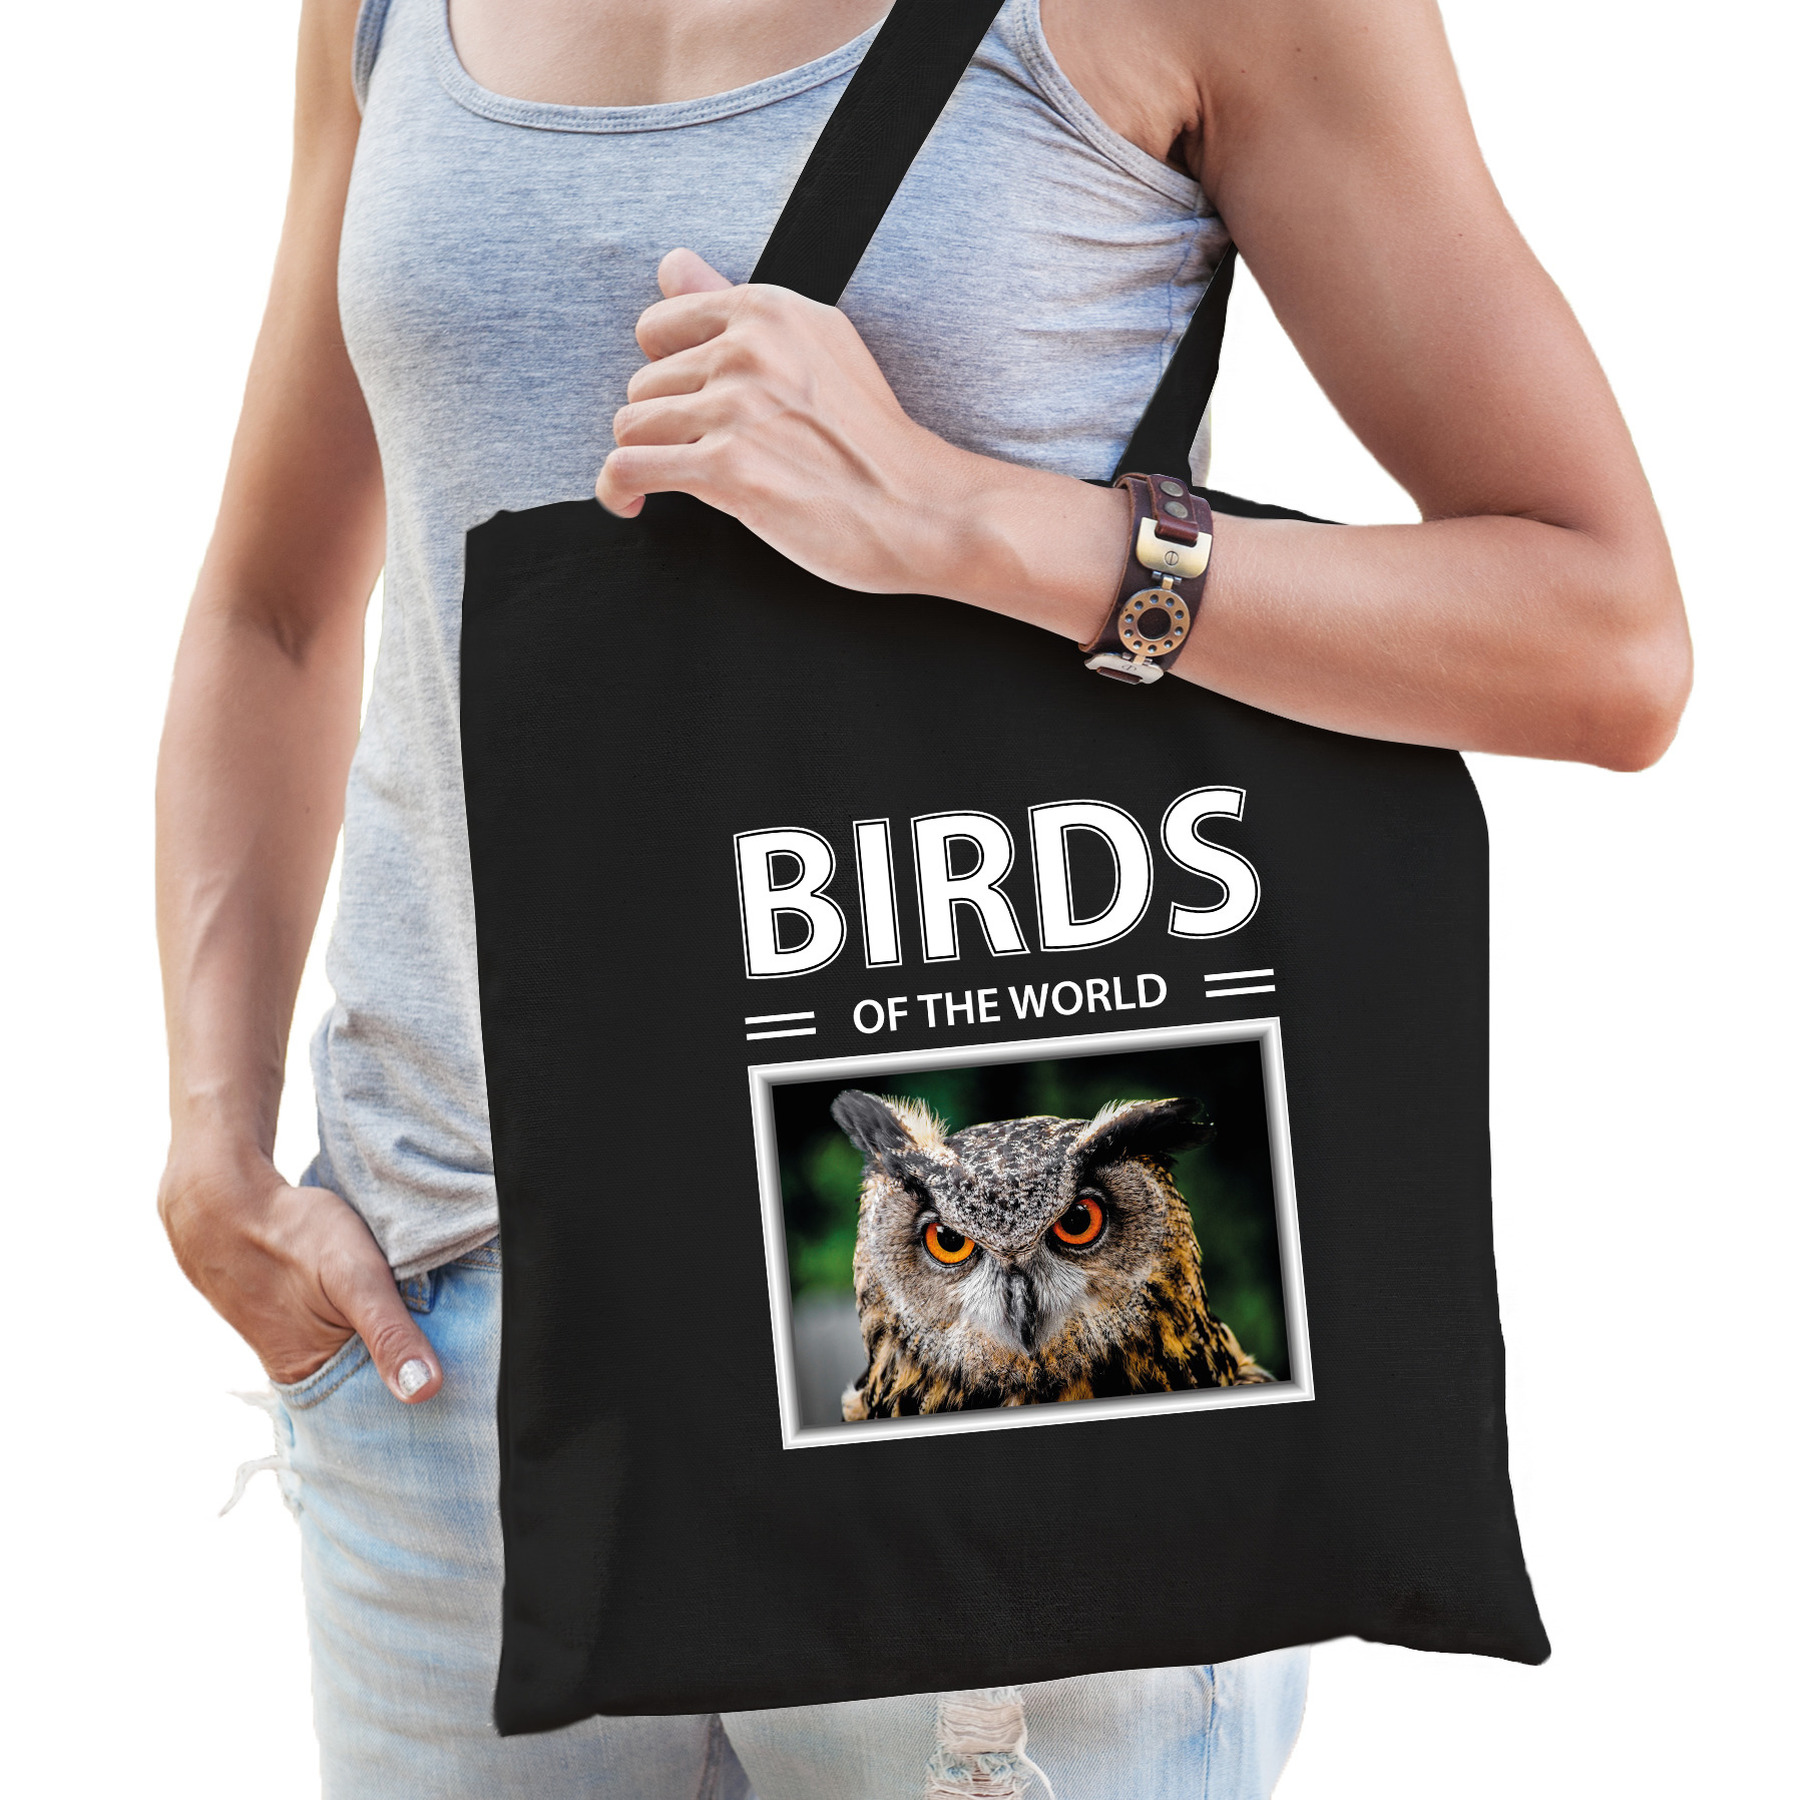 Katoenen tasje Uilen zwart - birds of the world Uil cadeau tas